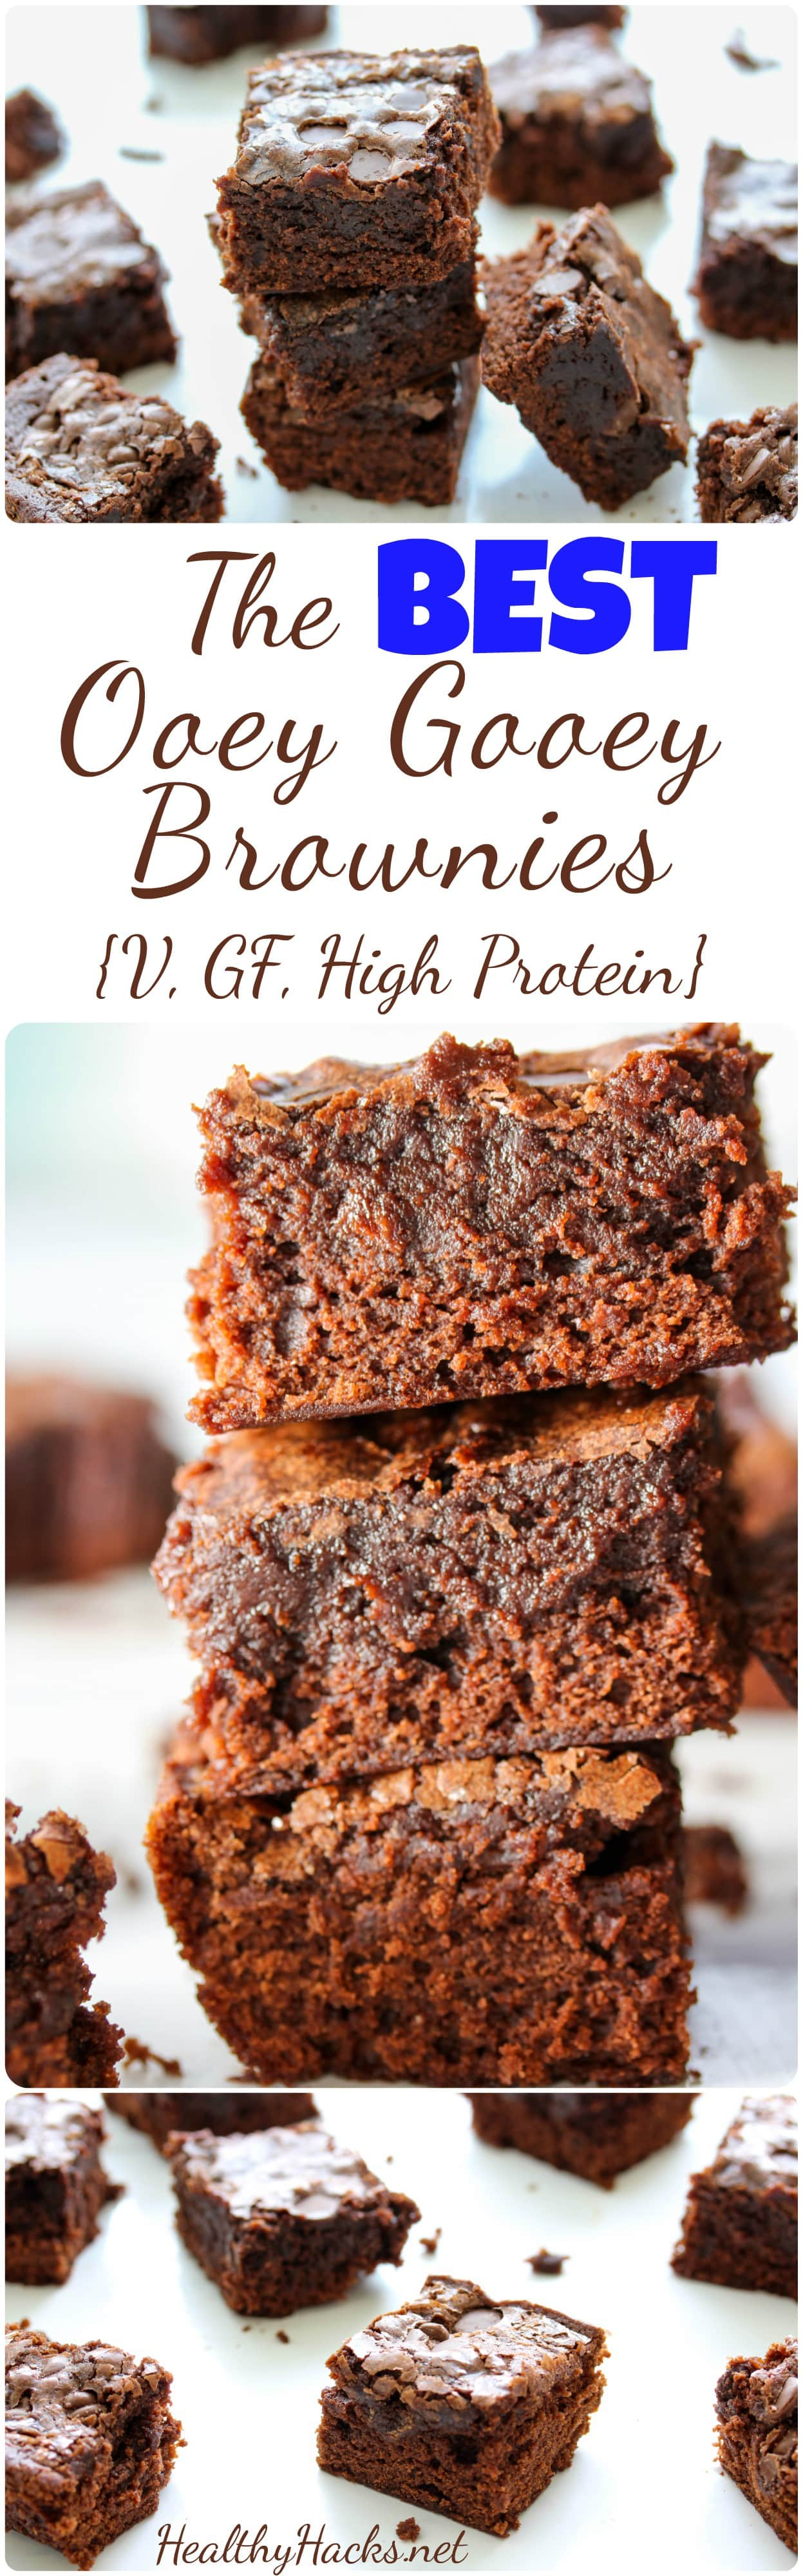 The Best ooey gooey vegan gluten free brownies